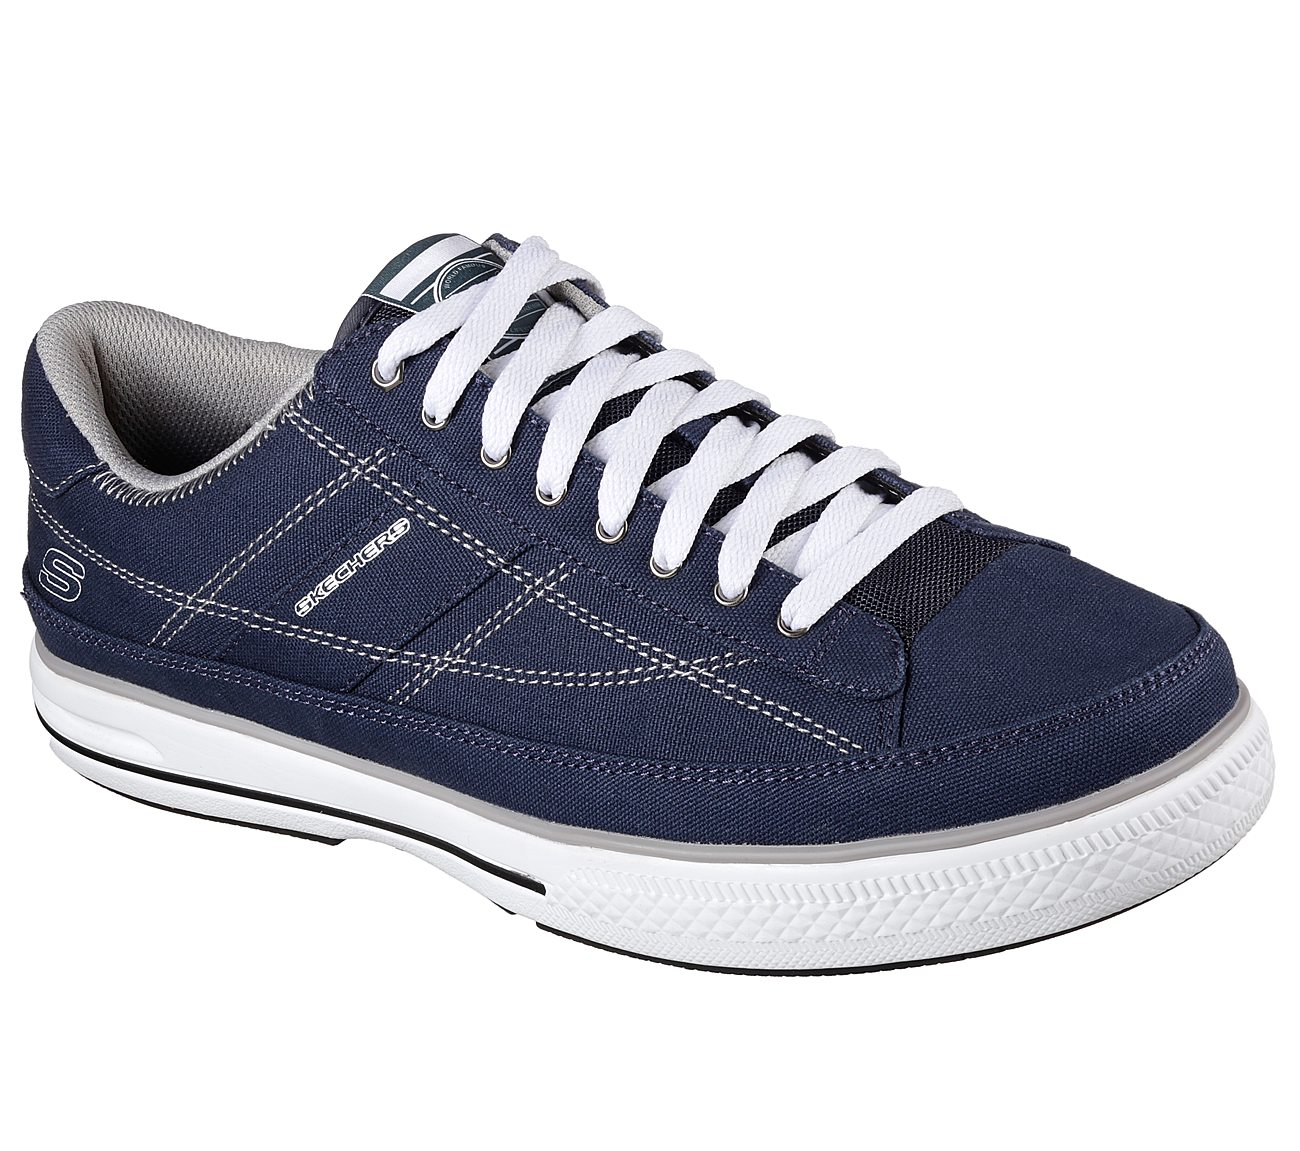 Skechers Arcade Chat Casual Lace Up Shoe